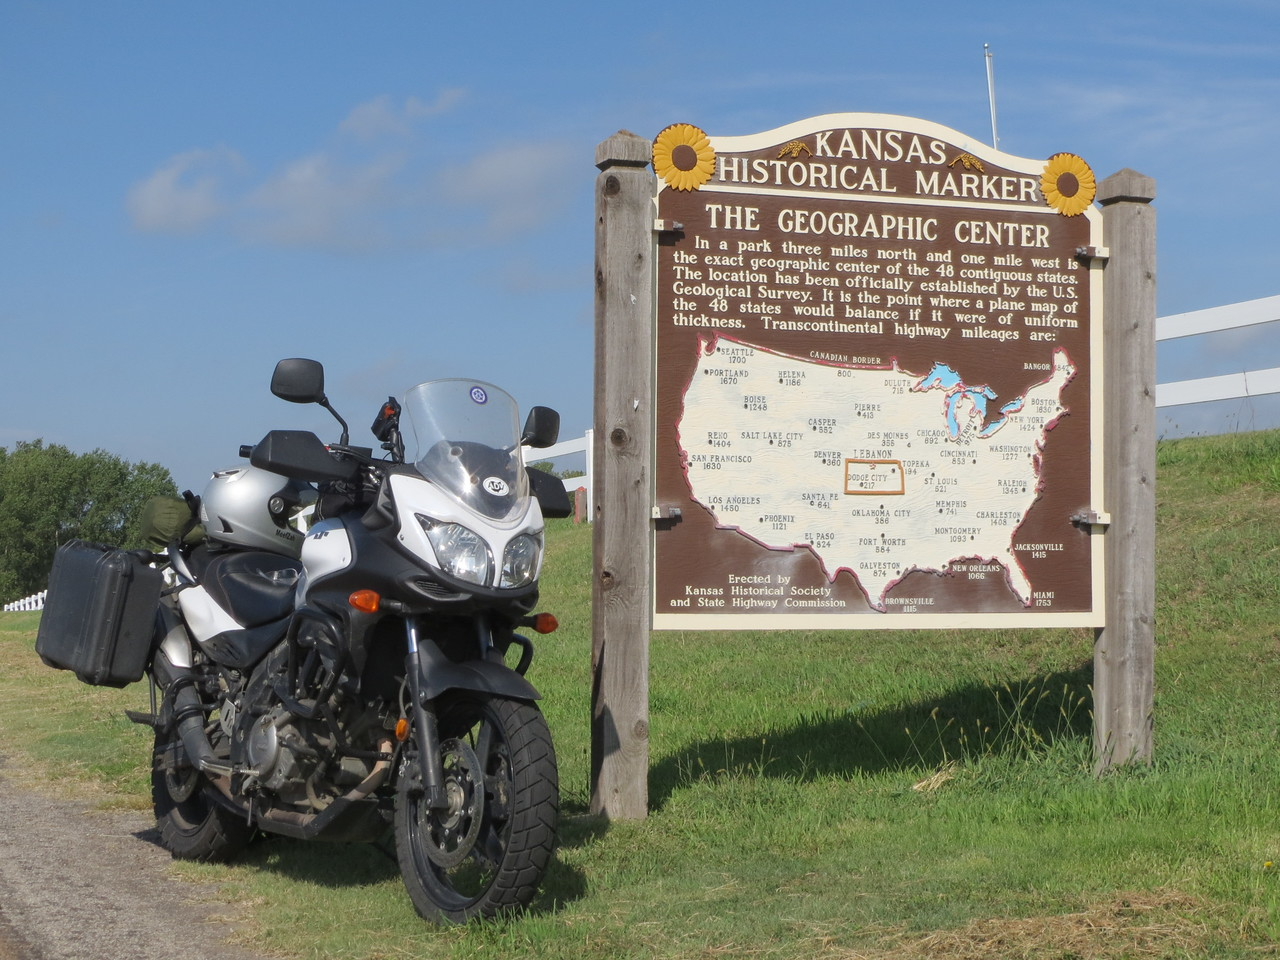 Day 2 (796 miles): It's the center of the US, if you use a crazy mathematical formula to determine that.